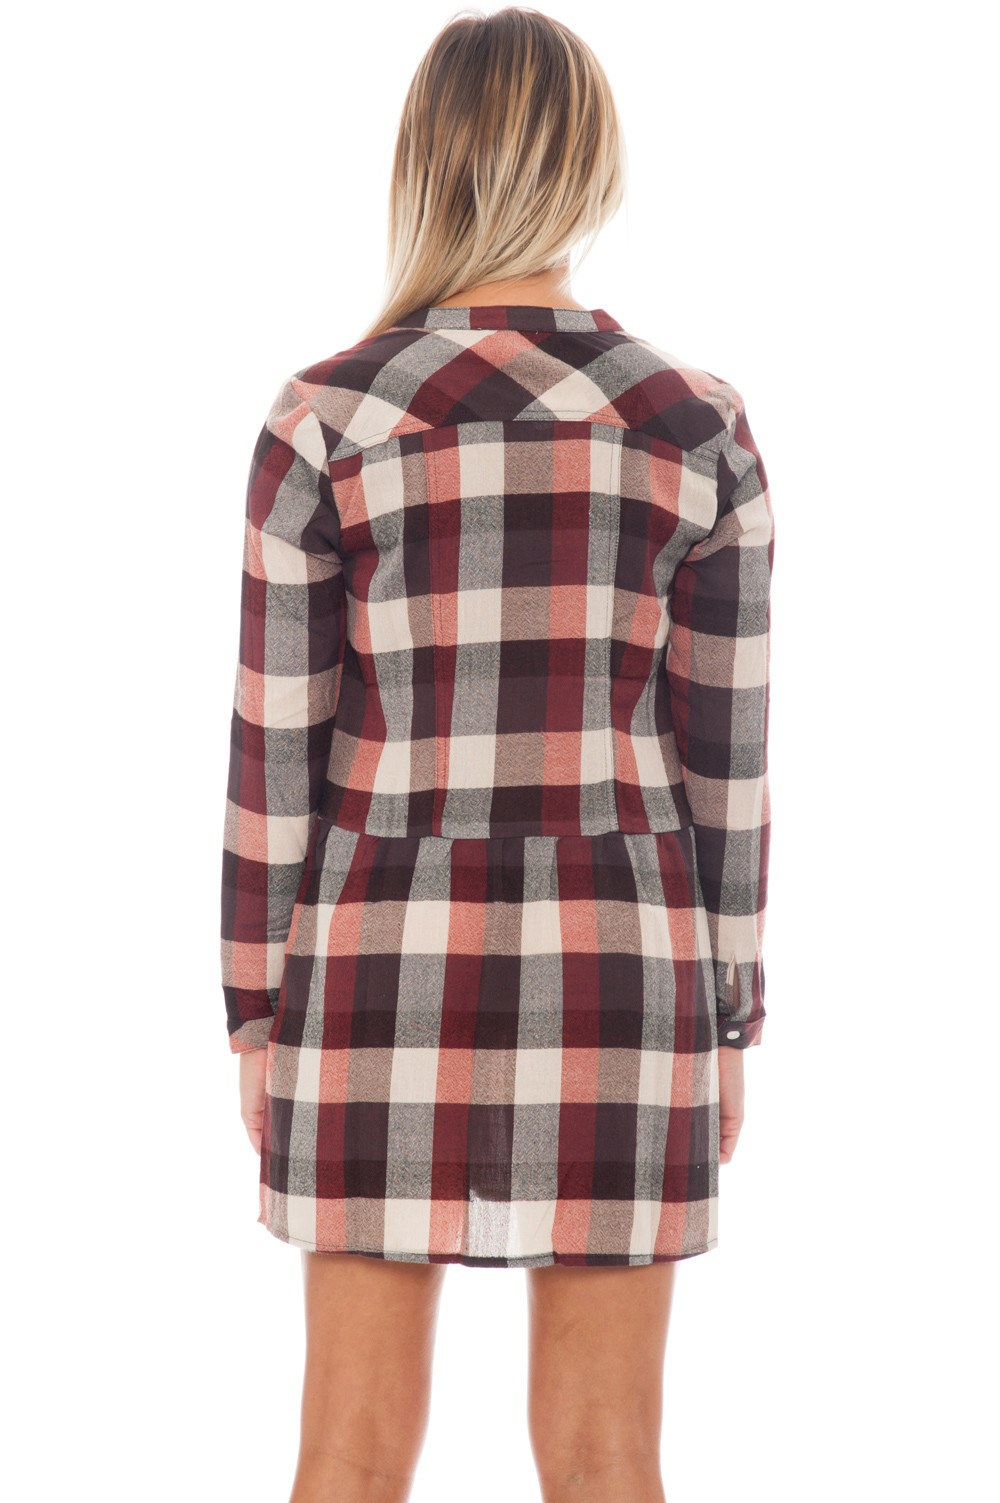 Dress - Plaid Button Up - 3